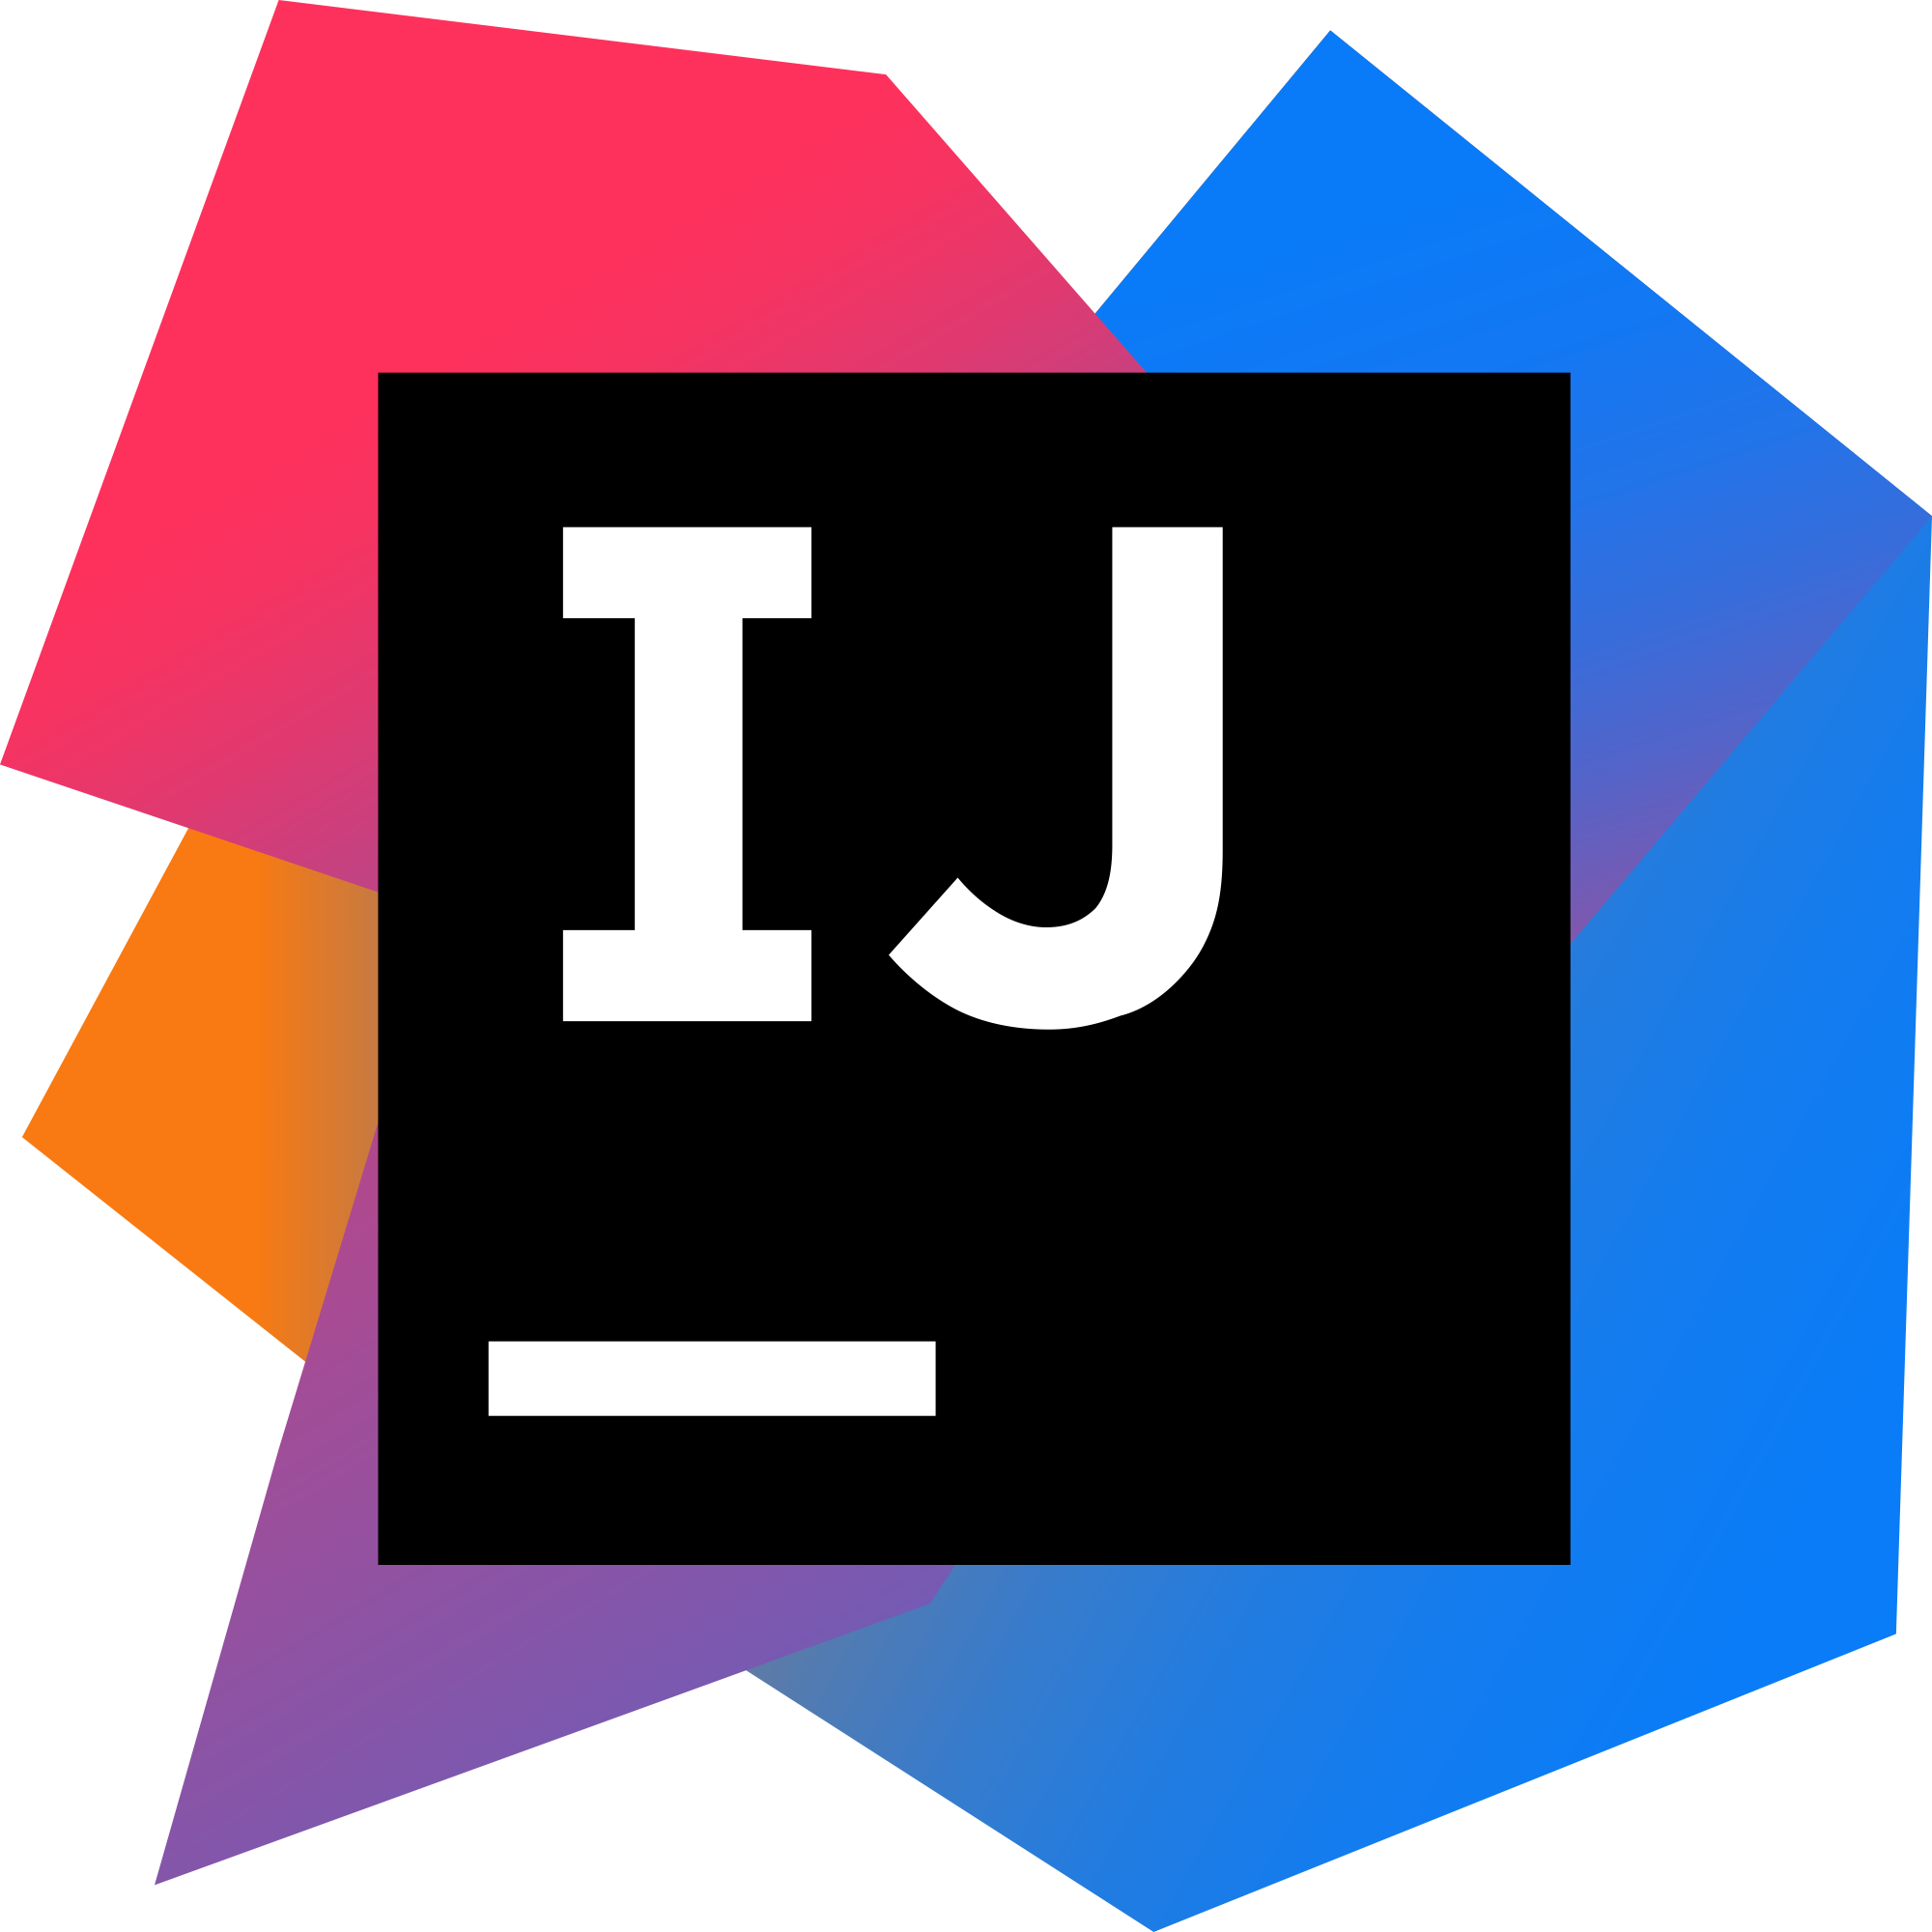 icon itellij idea